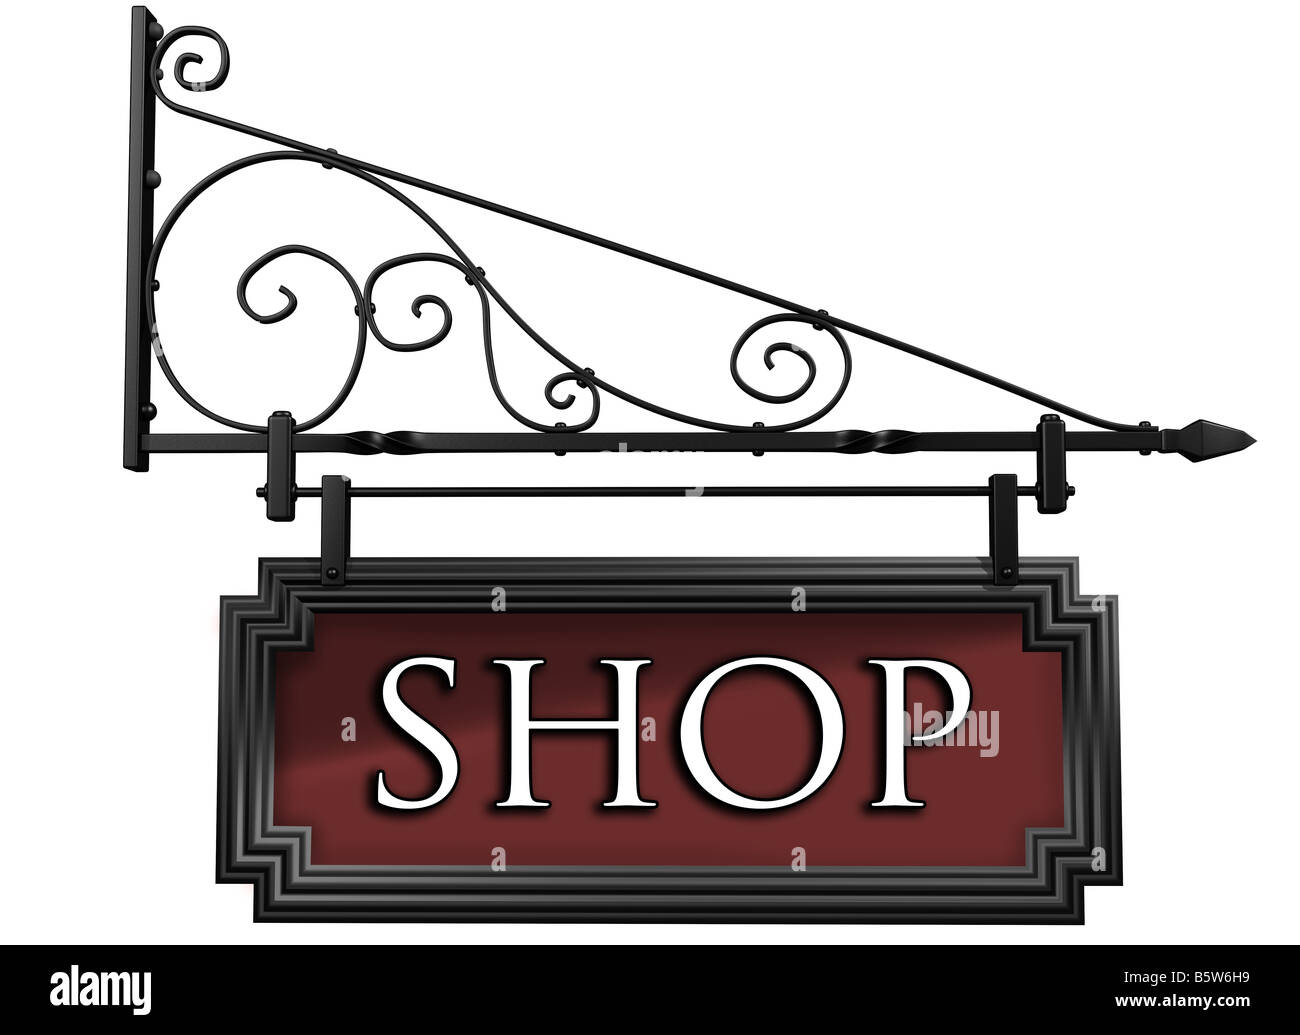 Illustration of an isolated antique style shop sign - Stock Image